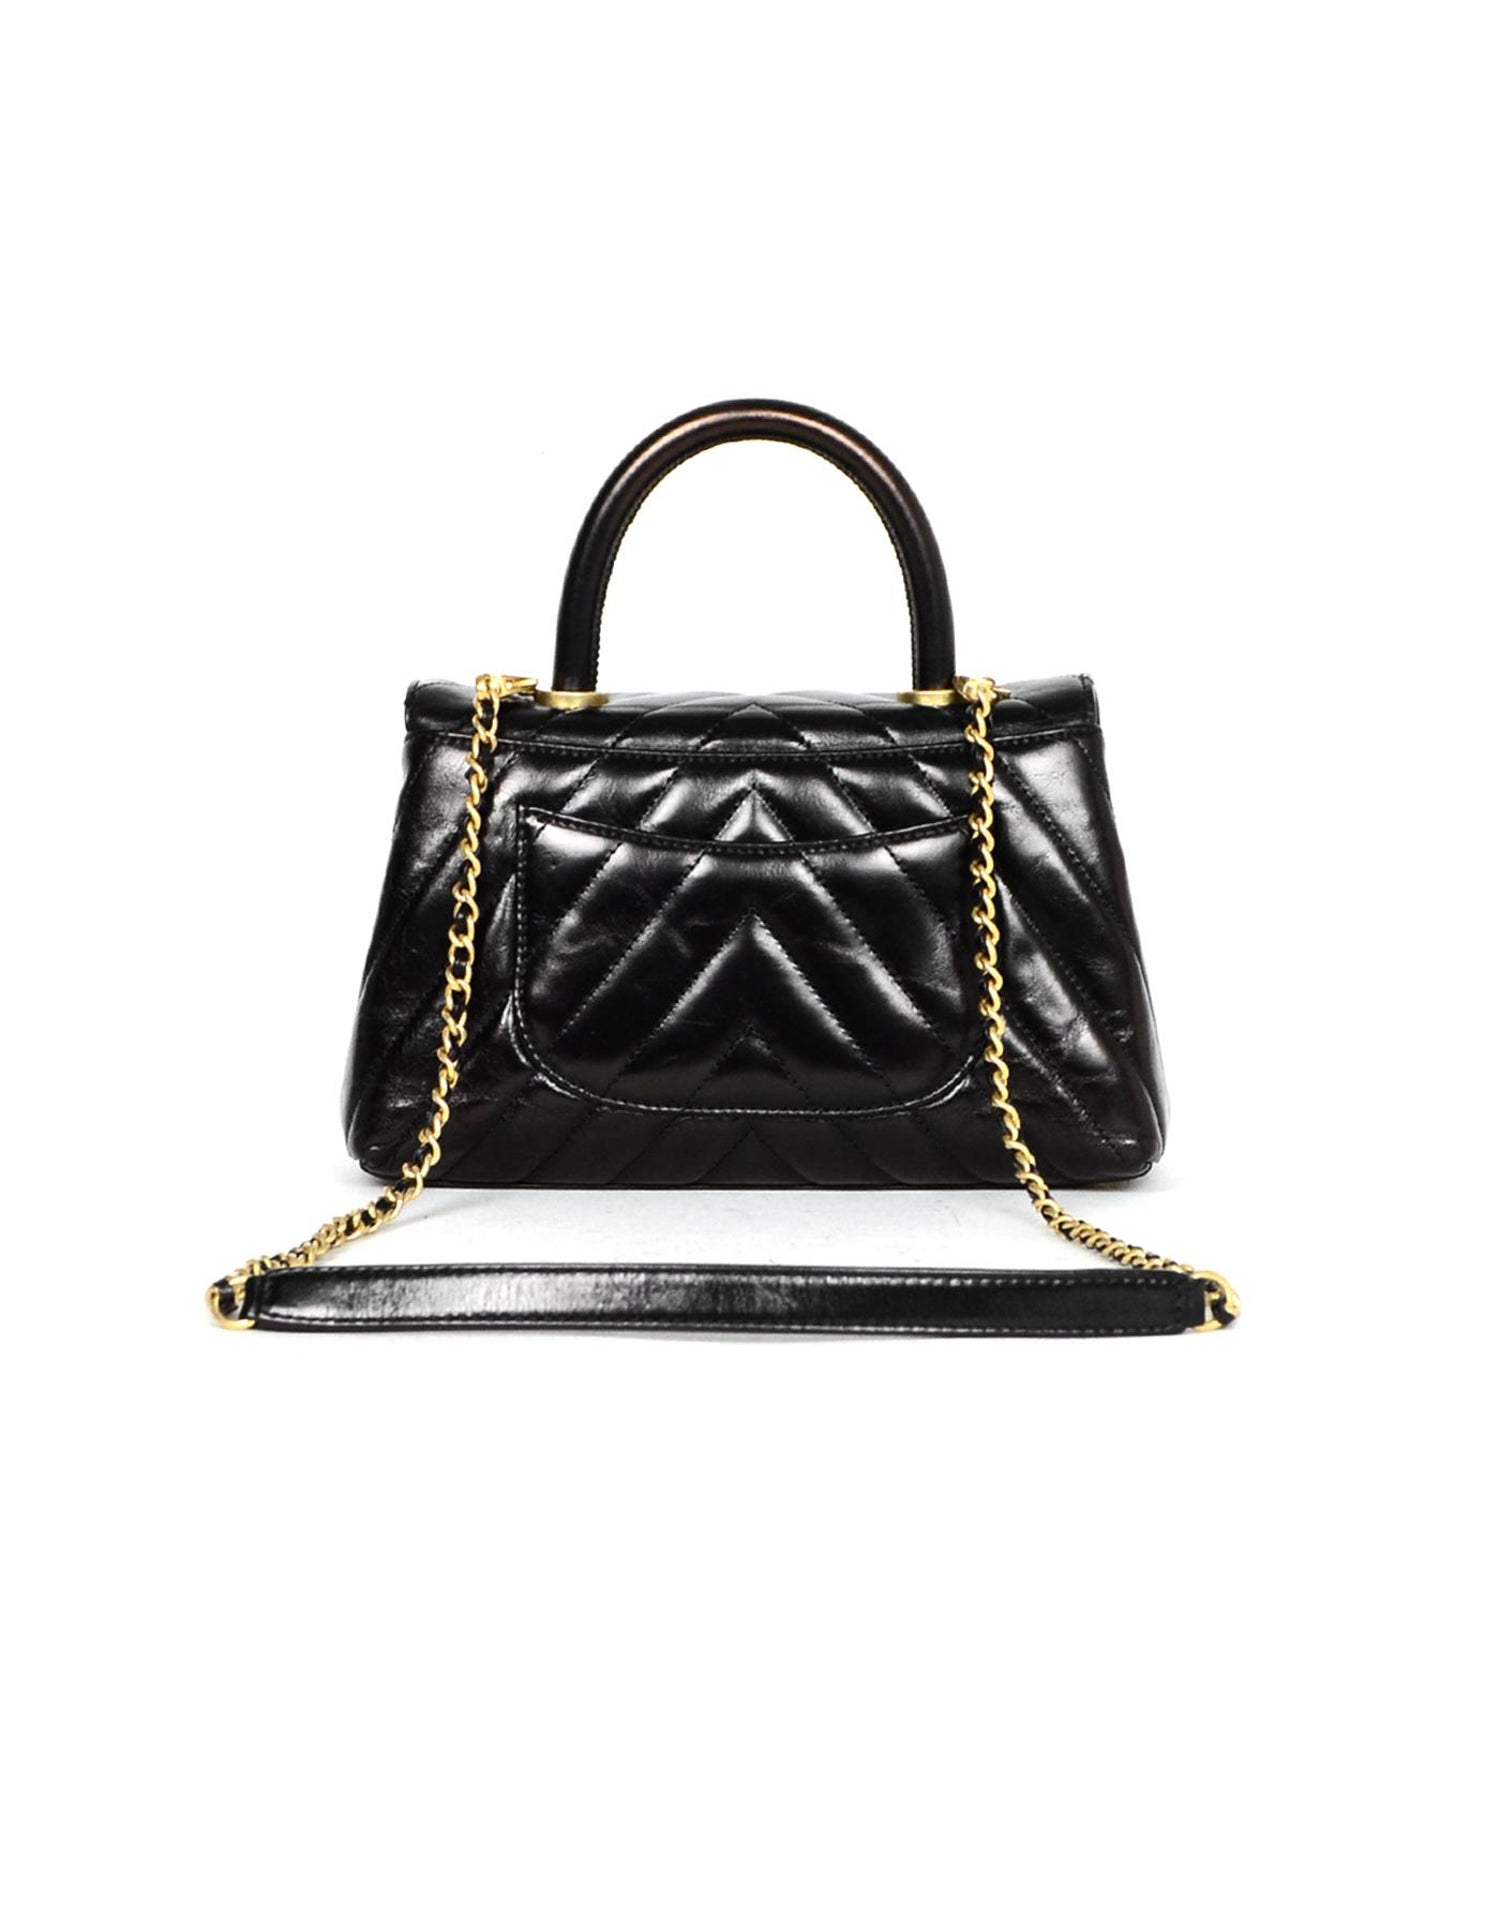 3d3d7d11b0ddac Chanel Black Shiny Calfskin Leather Chevron Quilted Mini Coco Handle Flap  Bag For Sale at 1stdibs